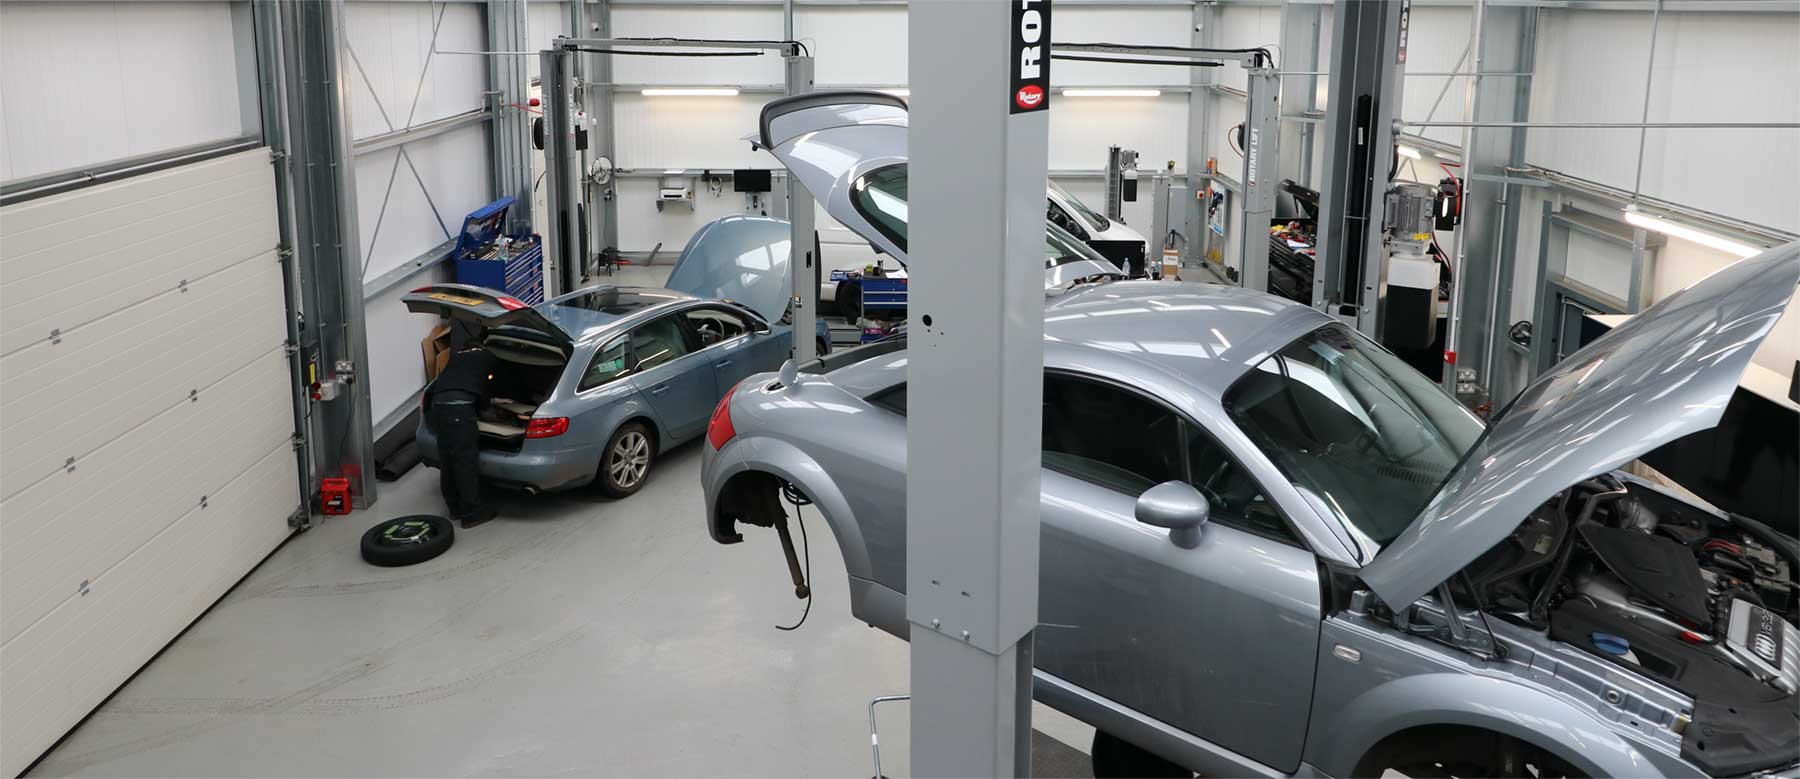 Our customers deal directly with the technicians